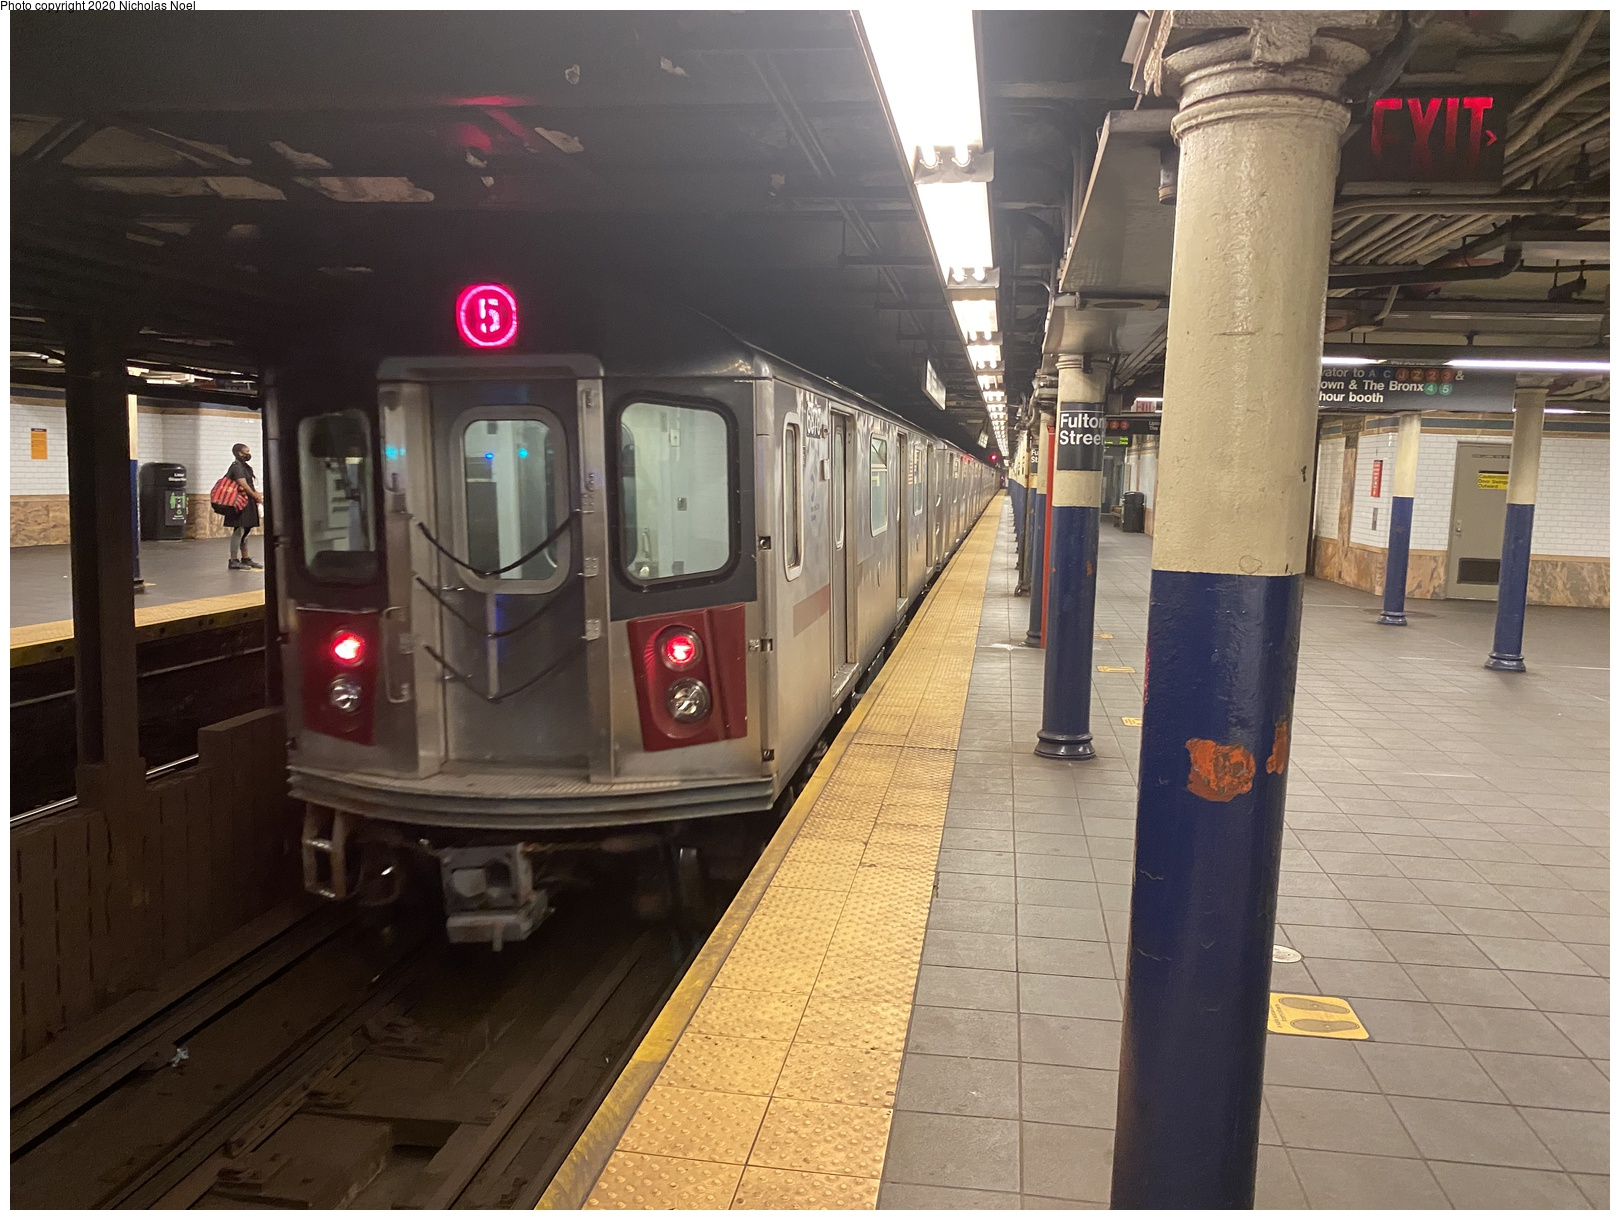 (160k, 1044x687)<br><b>Country:</b> United States<br><b>City:</b> New York<br><b>System:</b> New York City Transit<br><b>Line:</b> IRT Flushing Line<br><b>Location:</b> 33rd Street/Rawson Street <br><b>Car:</b> BMT QX   <br><b>Photo by:</b> Joel Shanus<br><b>Notes:</b> Low-roof 2-car BMT Work Service QX unit on center track, circa 1950<br><b>Viewed (this week/total):</b> 0 / 1547